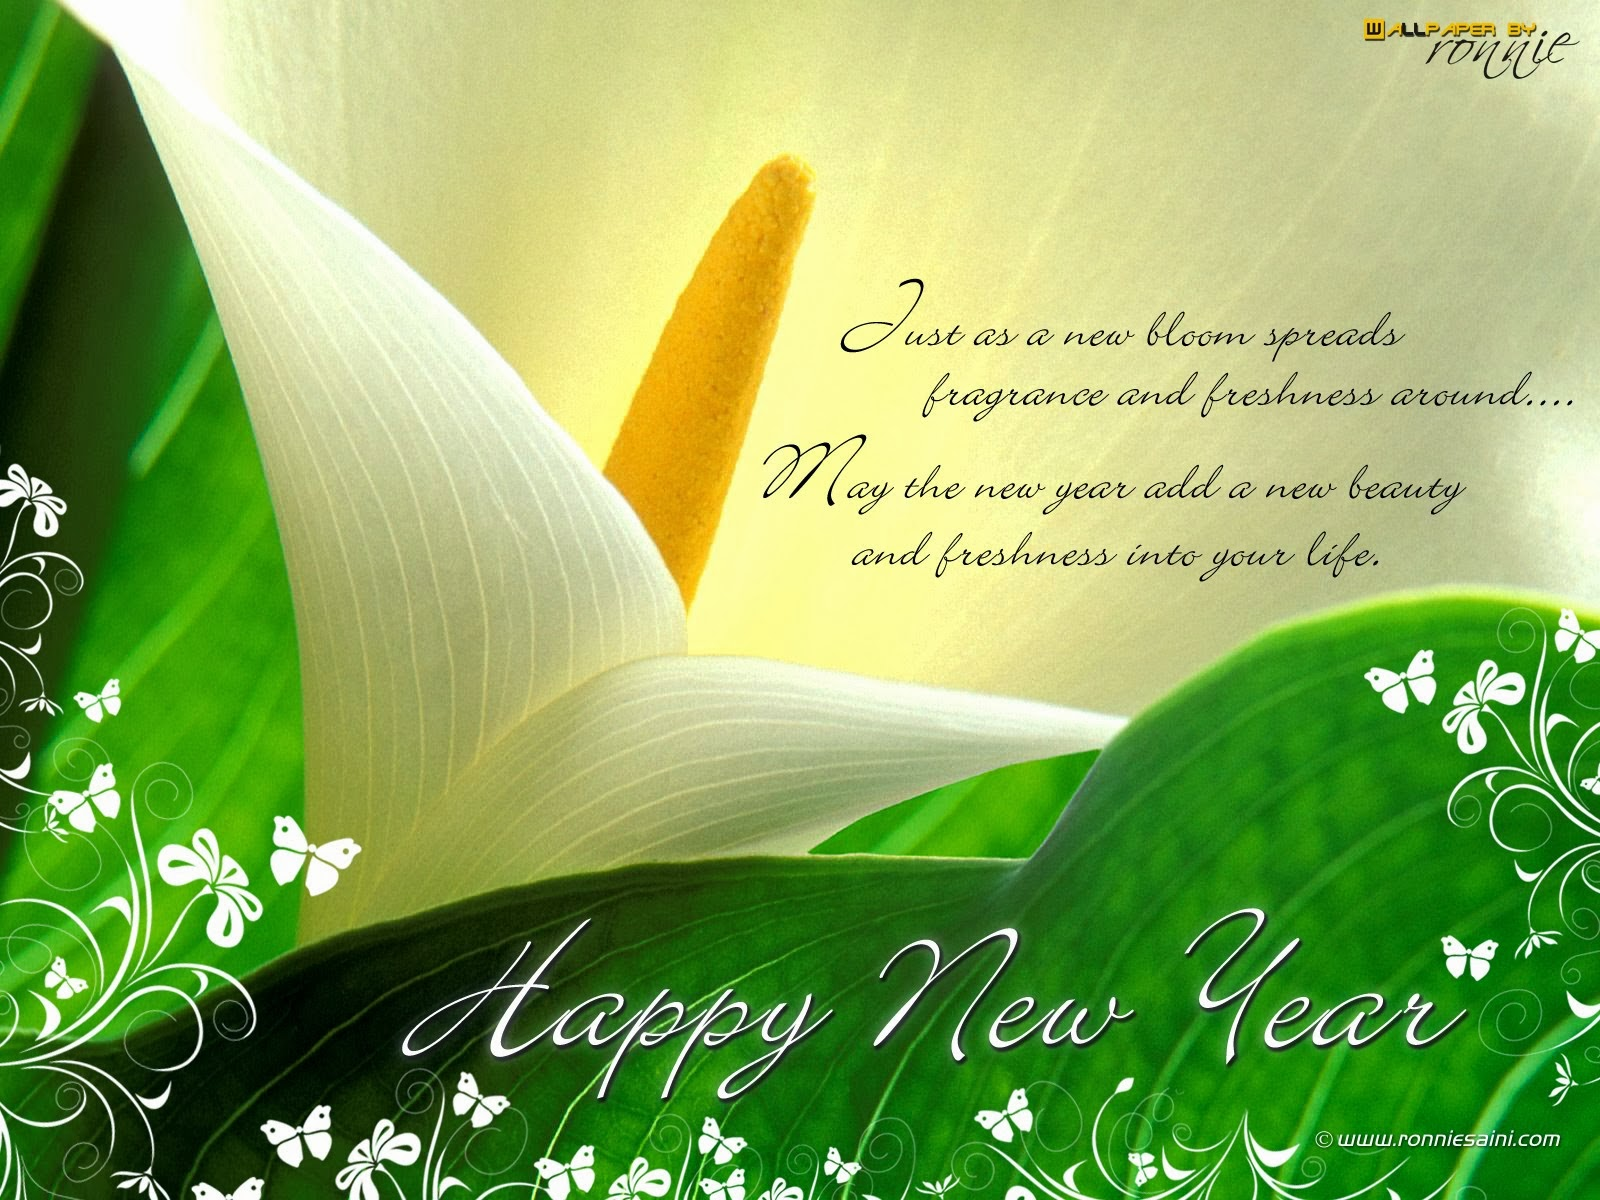 HAPPY NEW YEAR WISHES IN ENGLISH